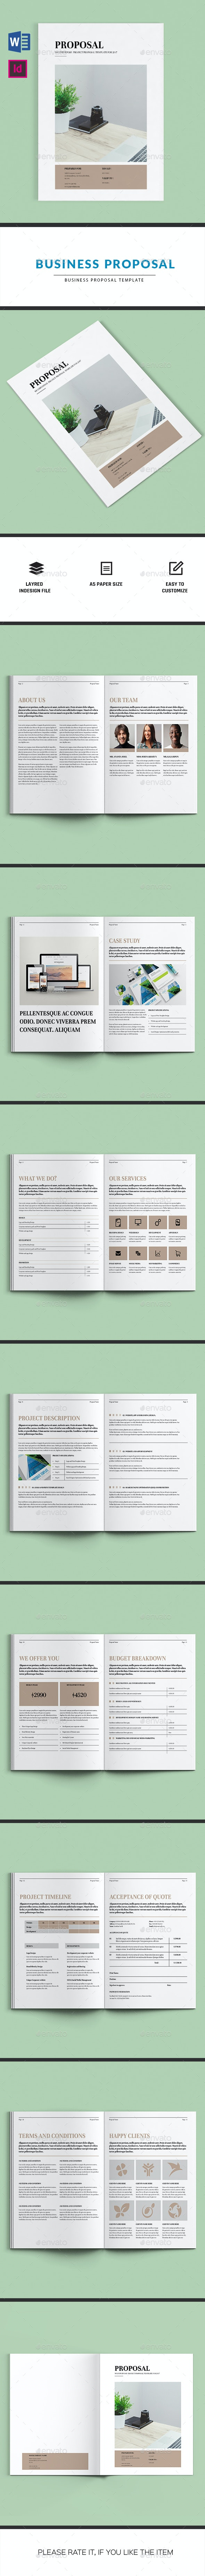 Business Proposal | Indesign & MS Word Template - Proposals & Invoices Stationery